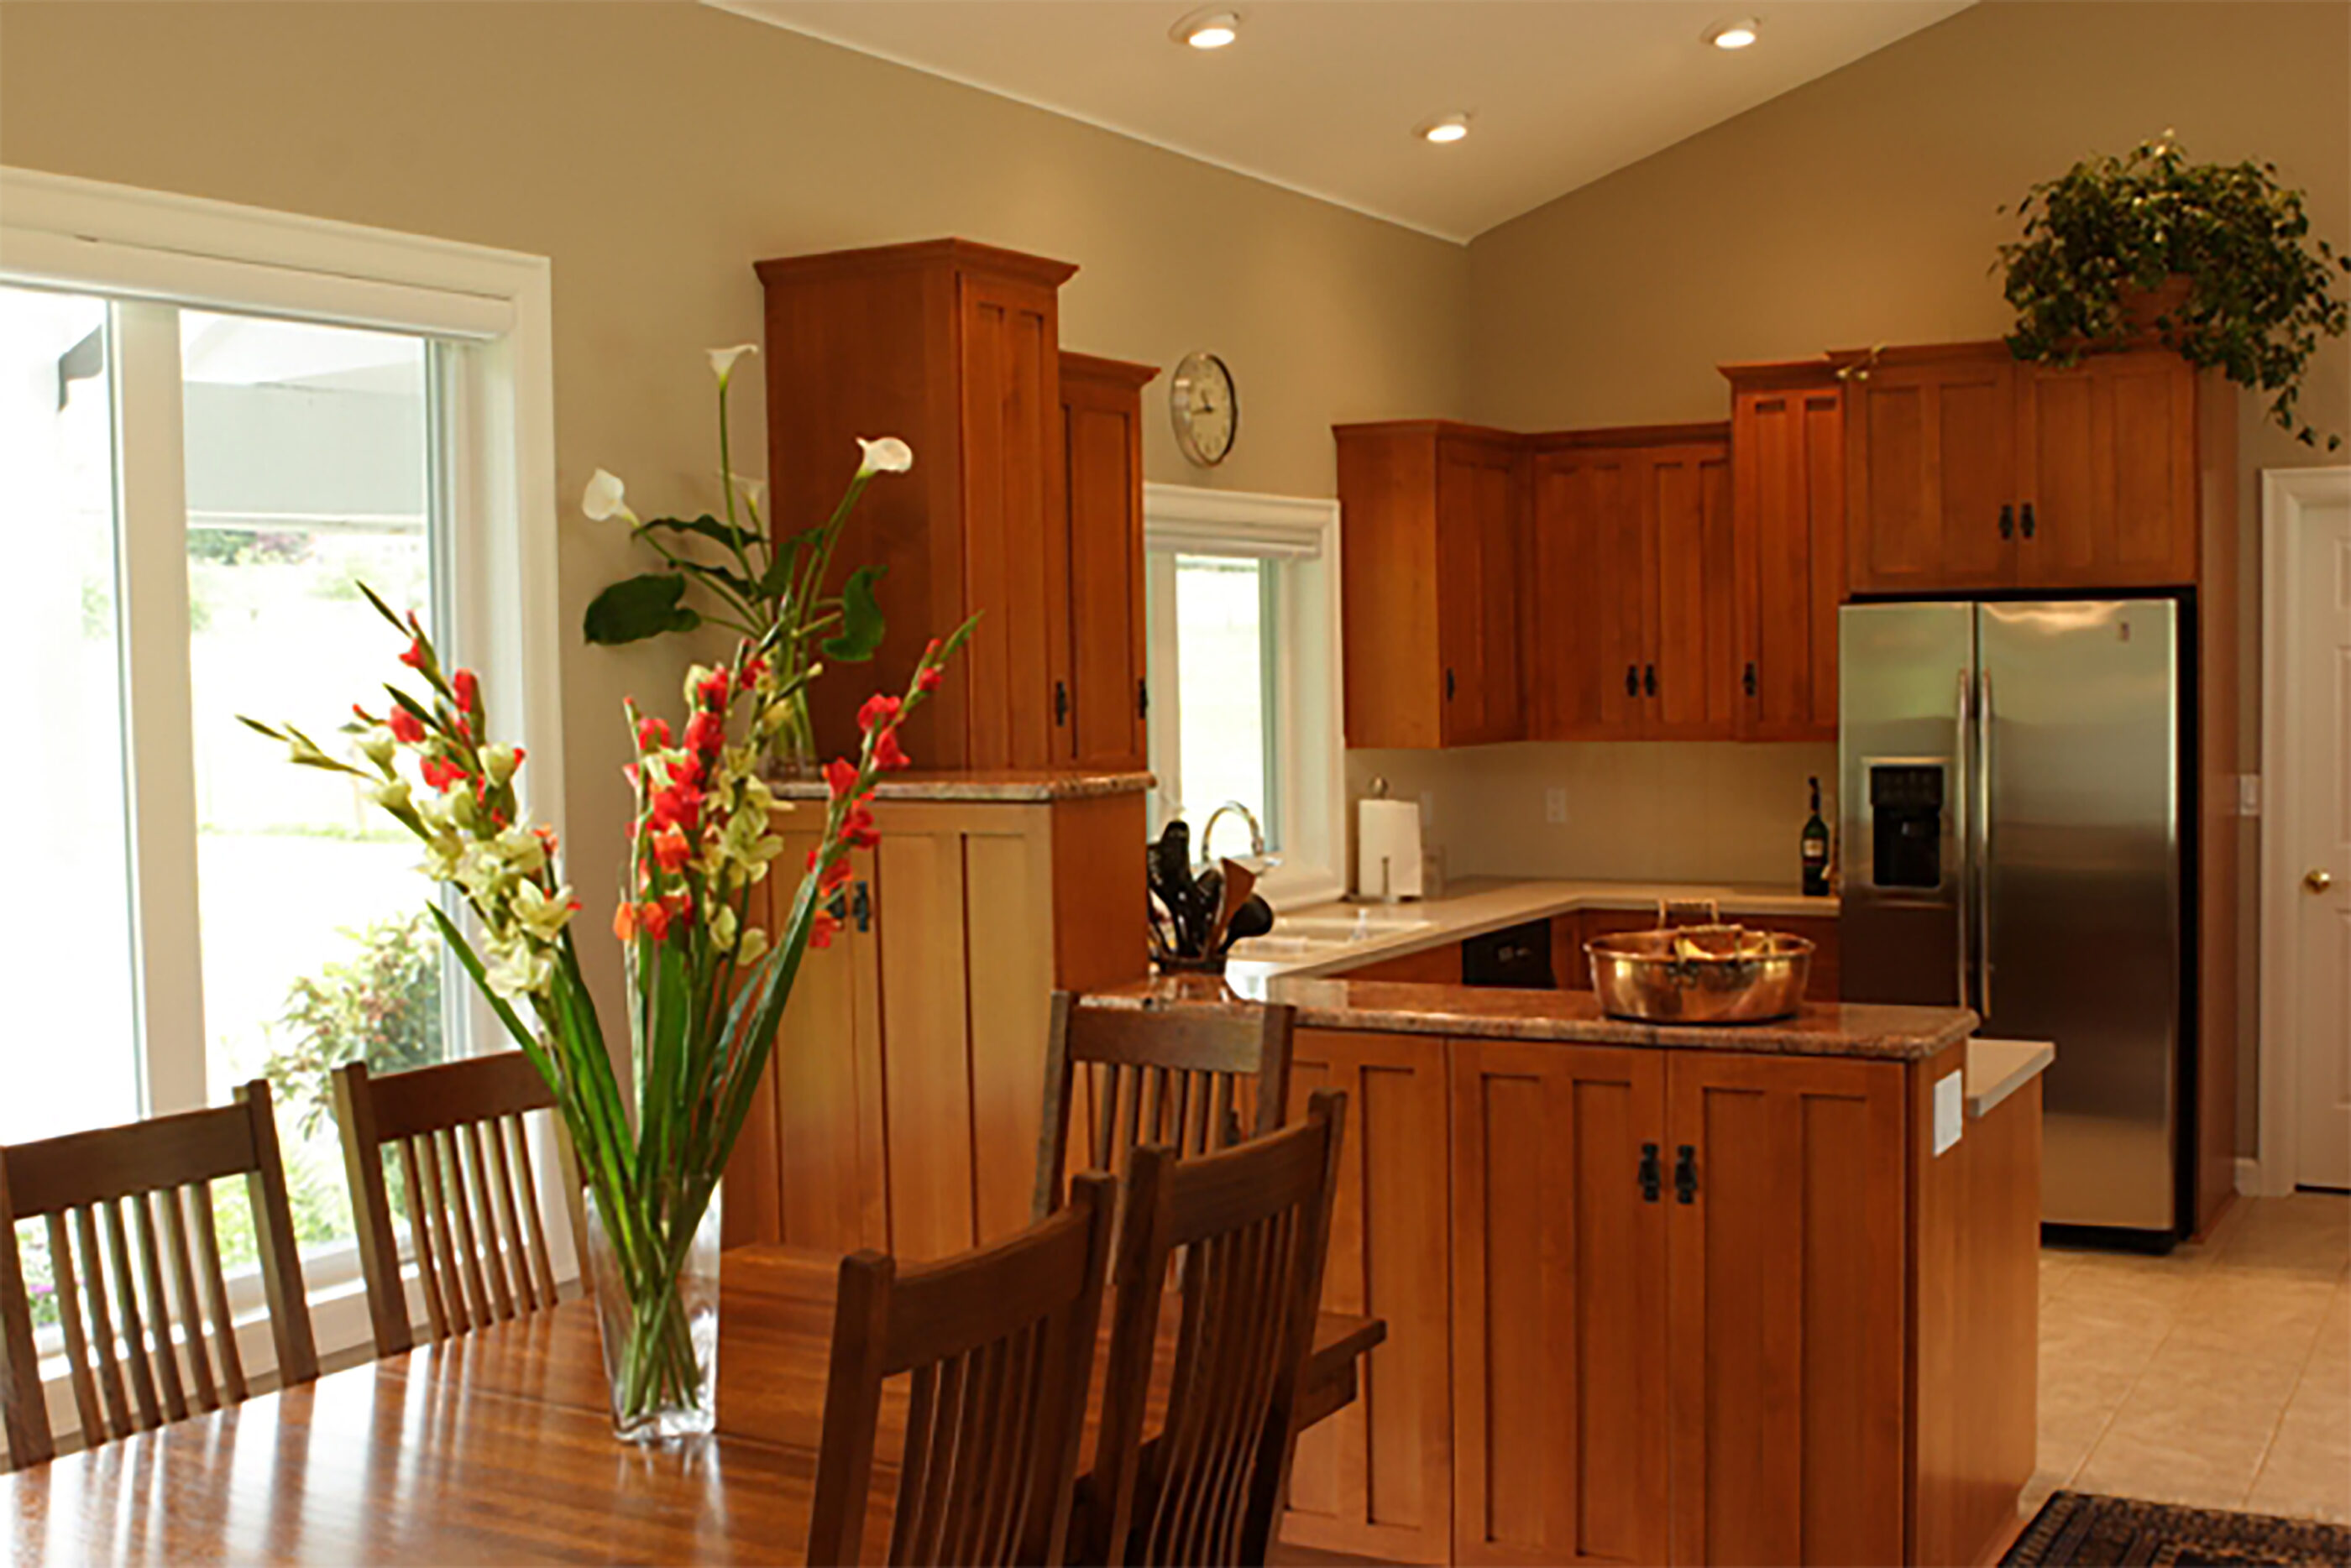 The newly remodeled kitchen with higher ceilings after the roof was raised.